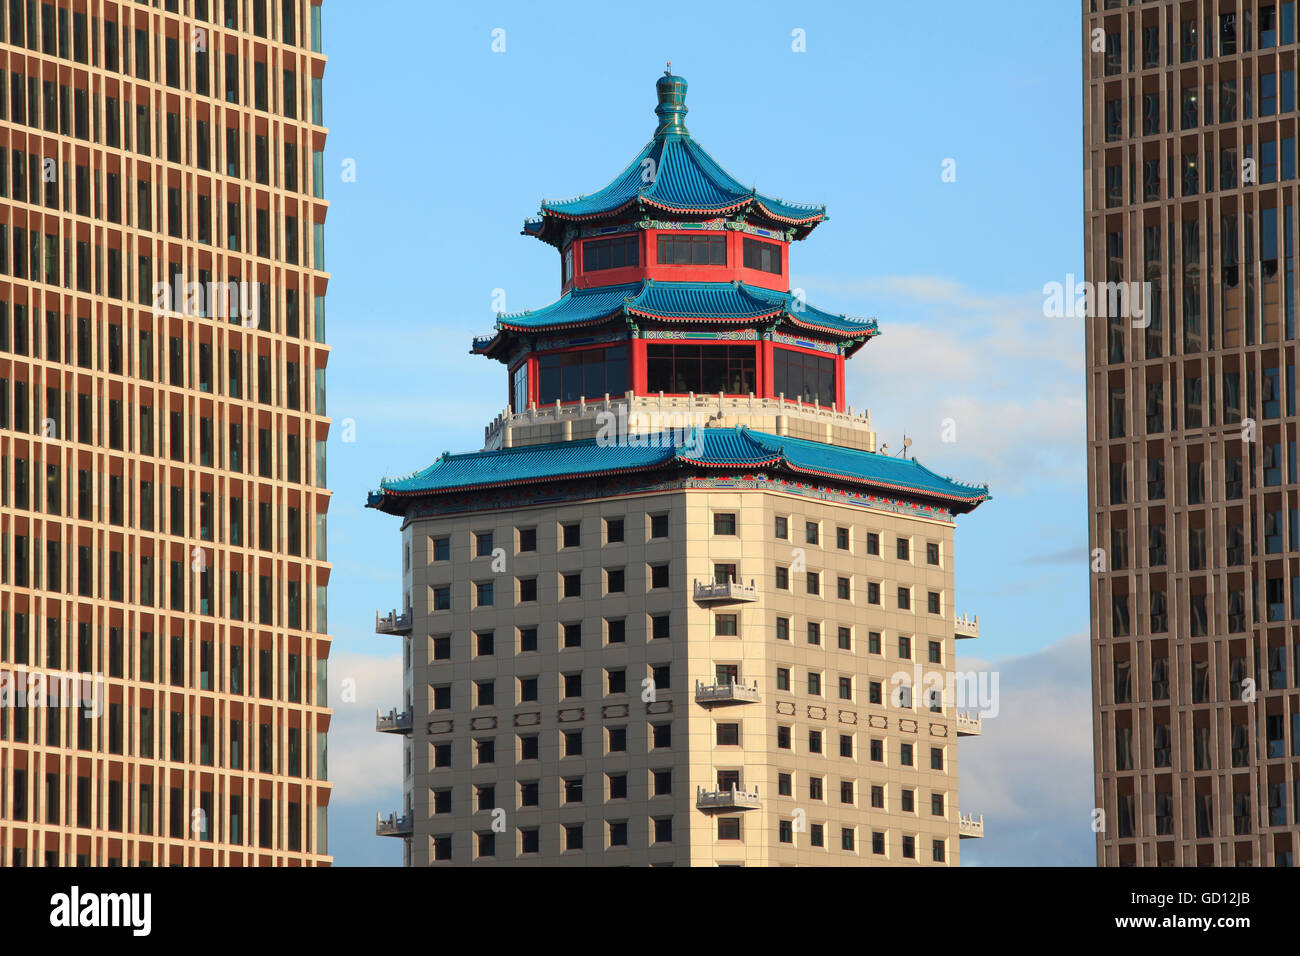 ASTANA, KAZAKHSTAN - JULY 03, 2016: Beijing Palace Soluxe Hotel at sunset  in downtown of Astana city, Kazakhstan. - Stock Image